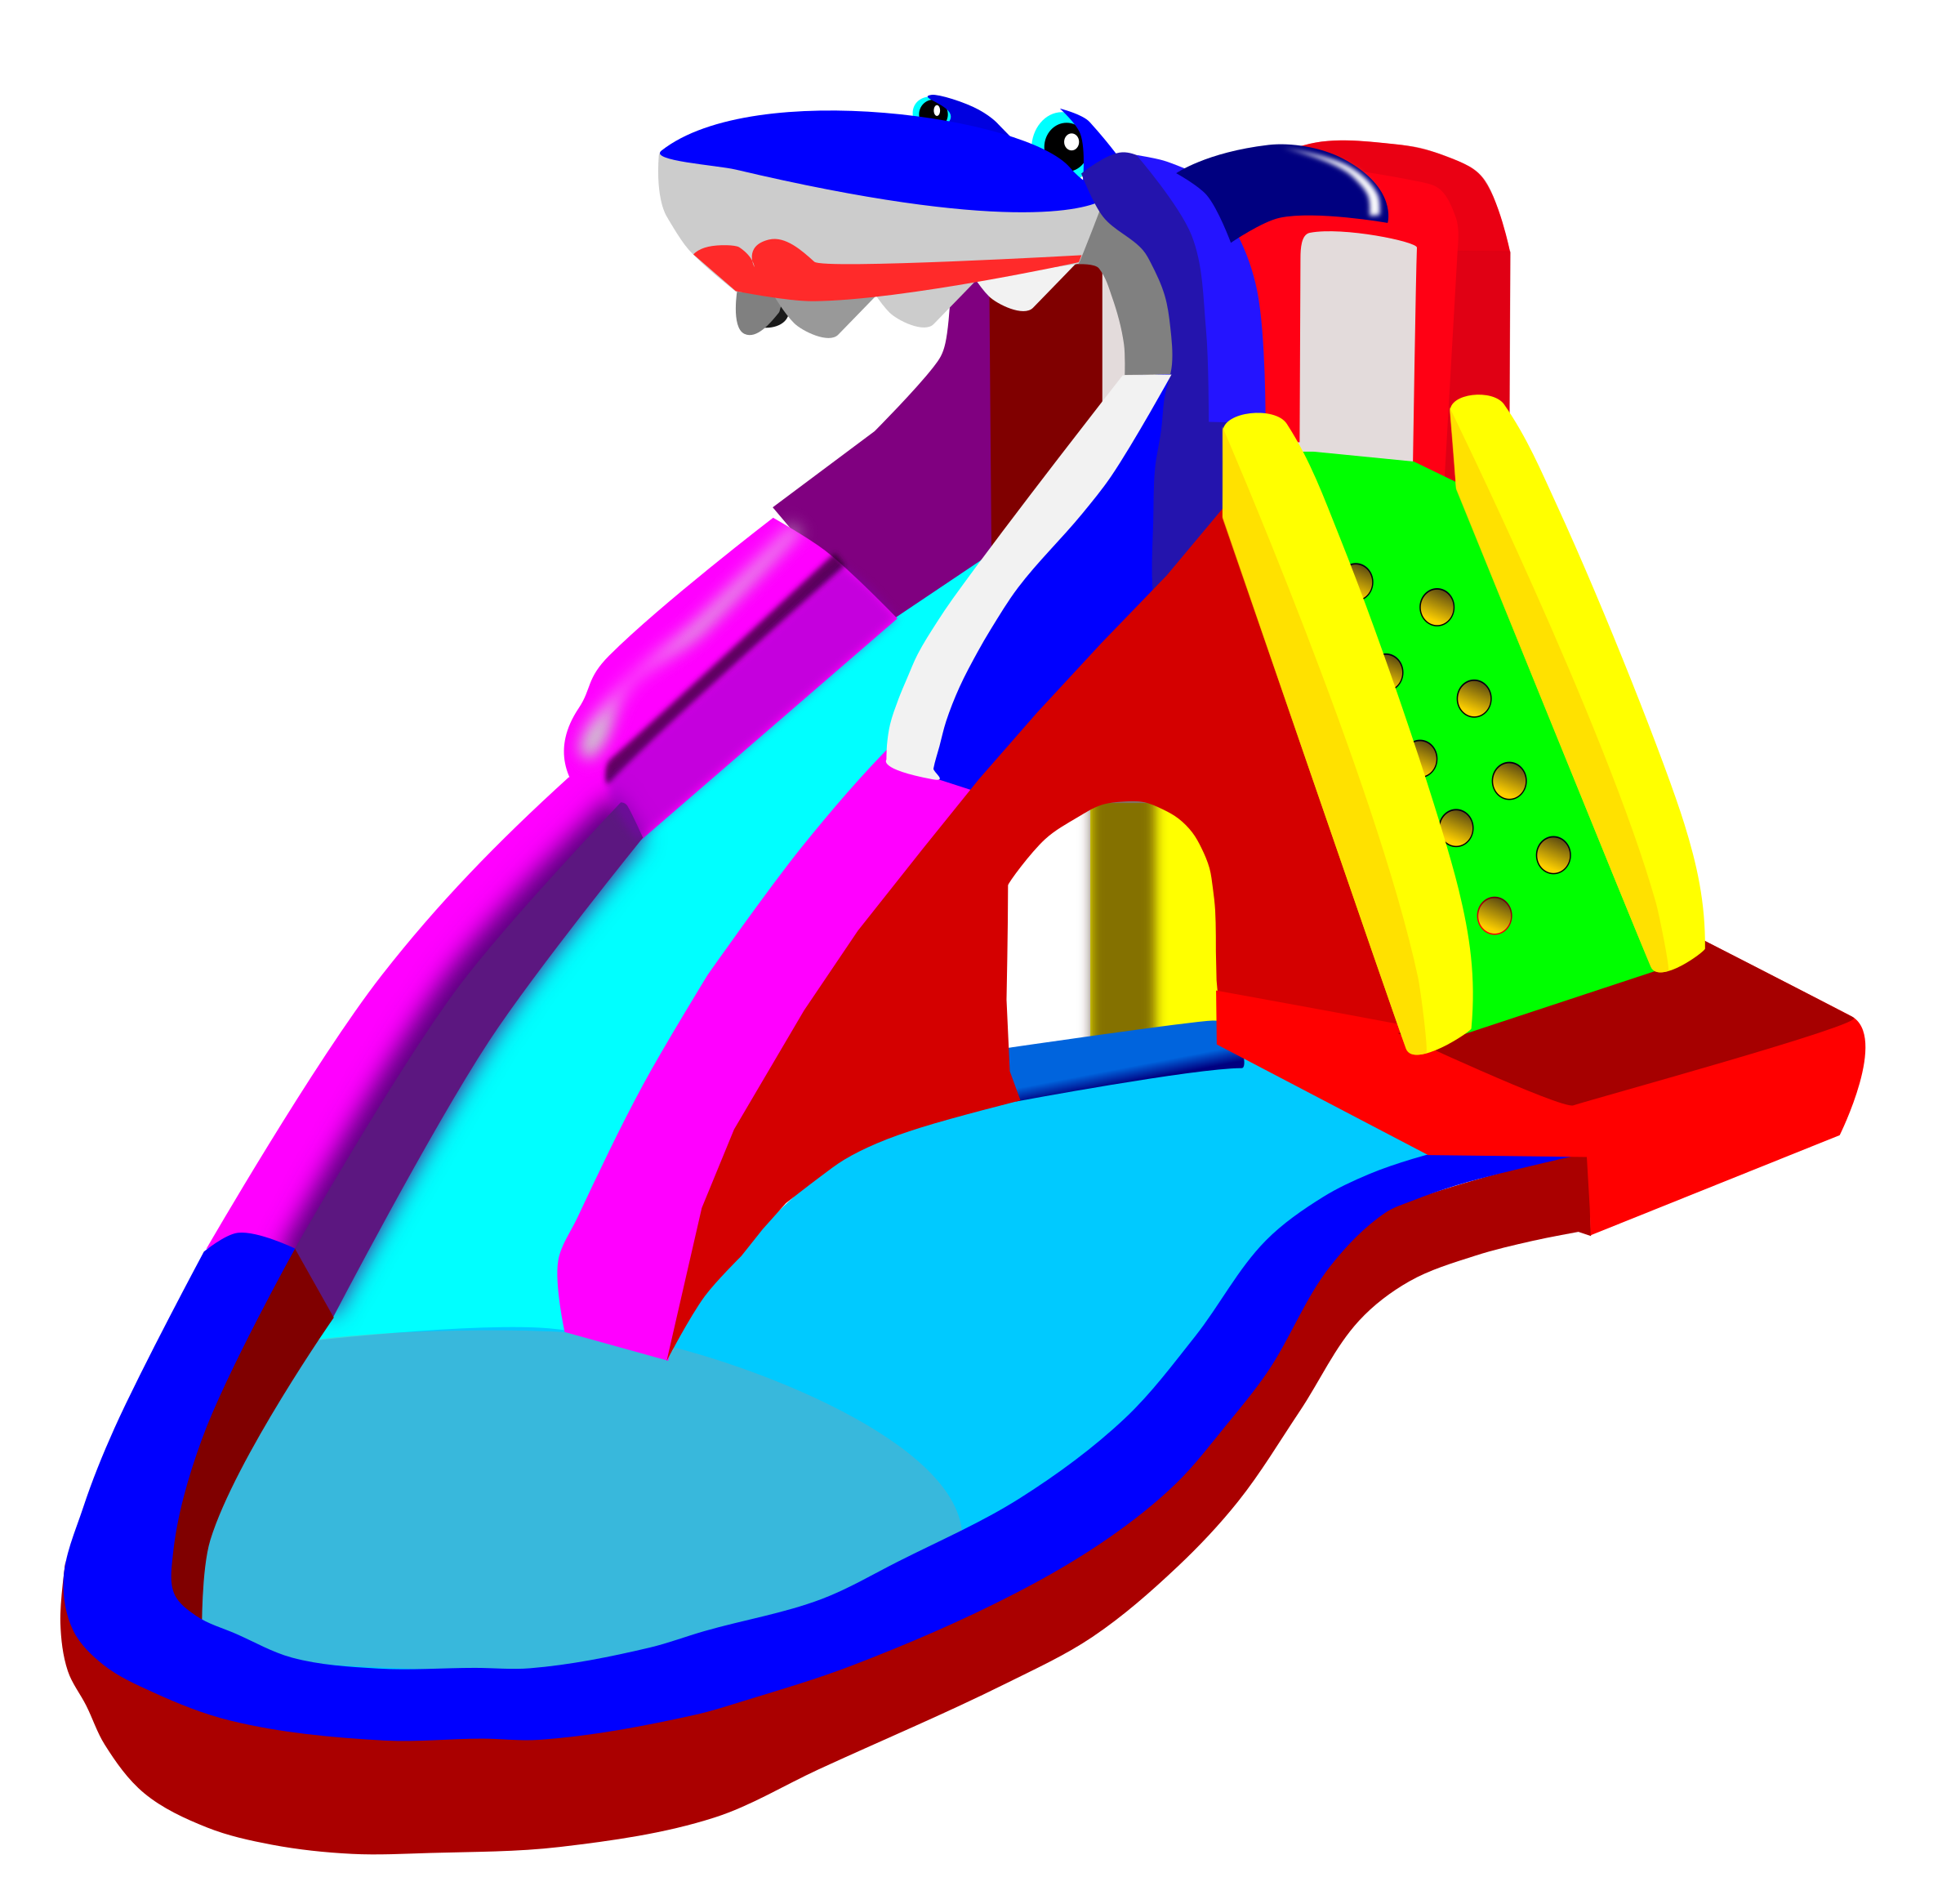 Bouncy Castle - Water Slide - Pool by alanspeak